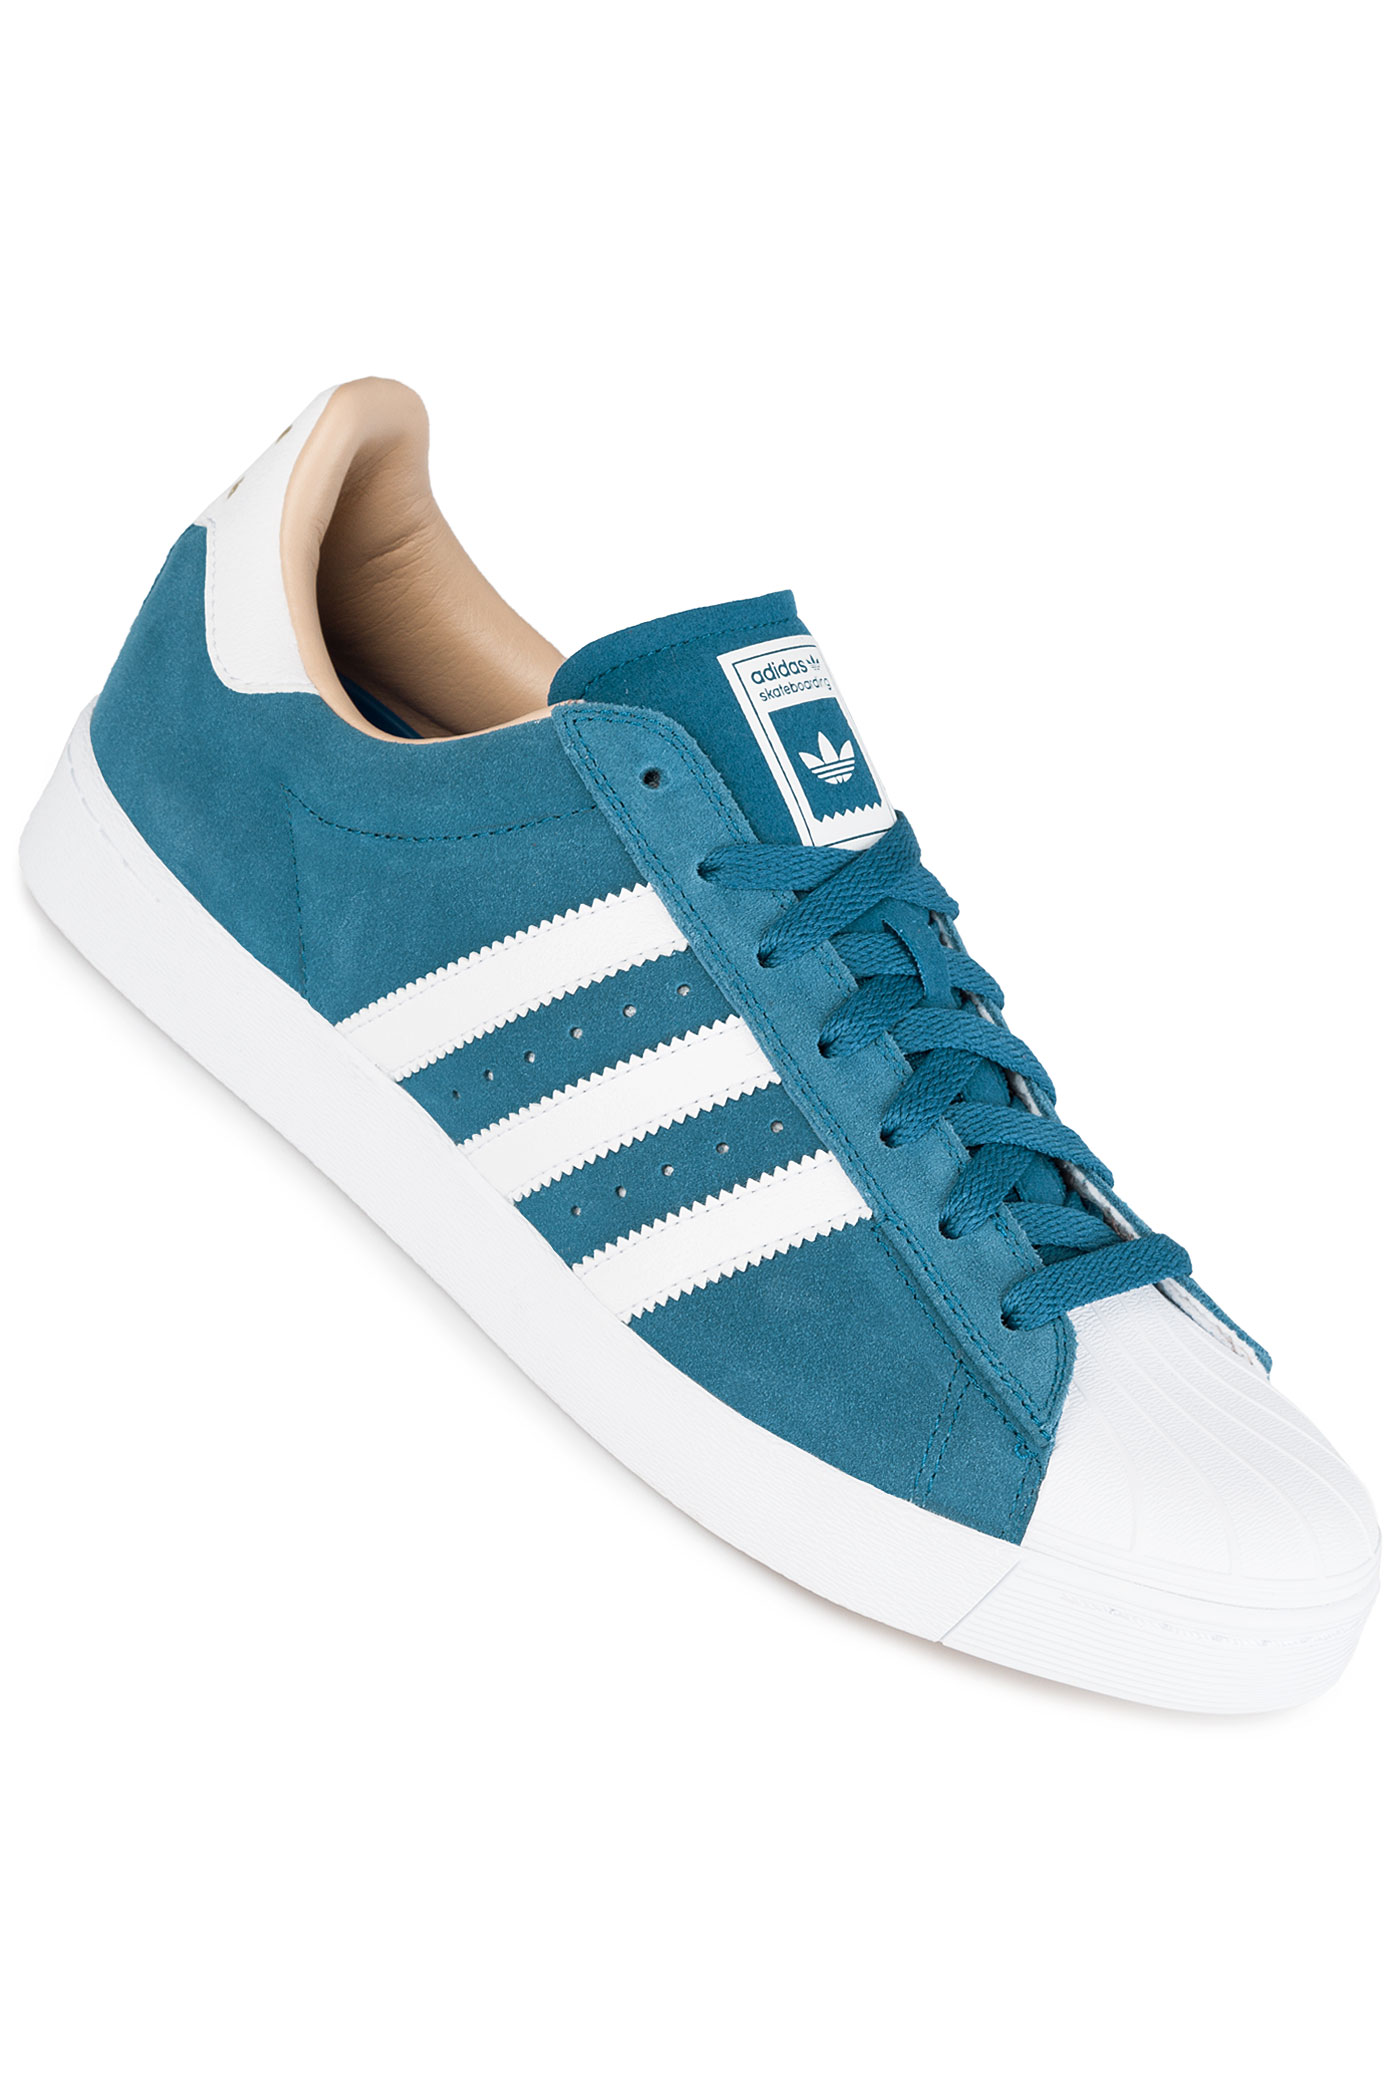 adidas superstar vulc adv schuh core blue white gold. Black Bedroom Furniture Sets. Home Design Ideas